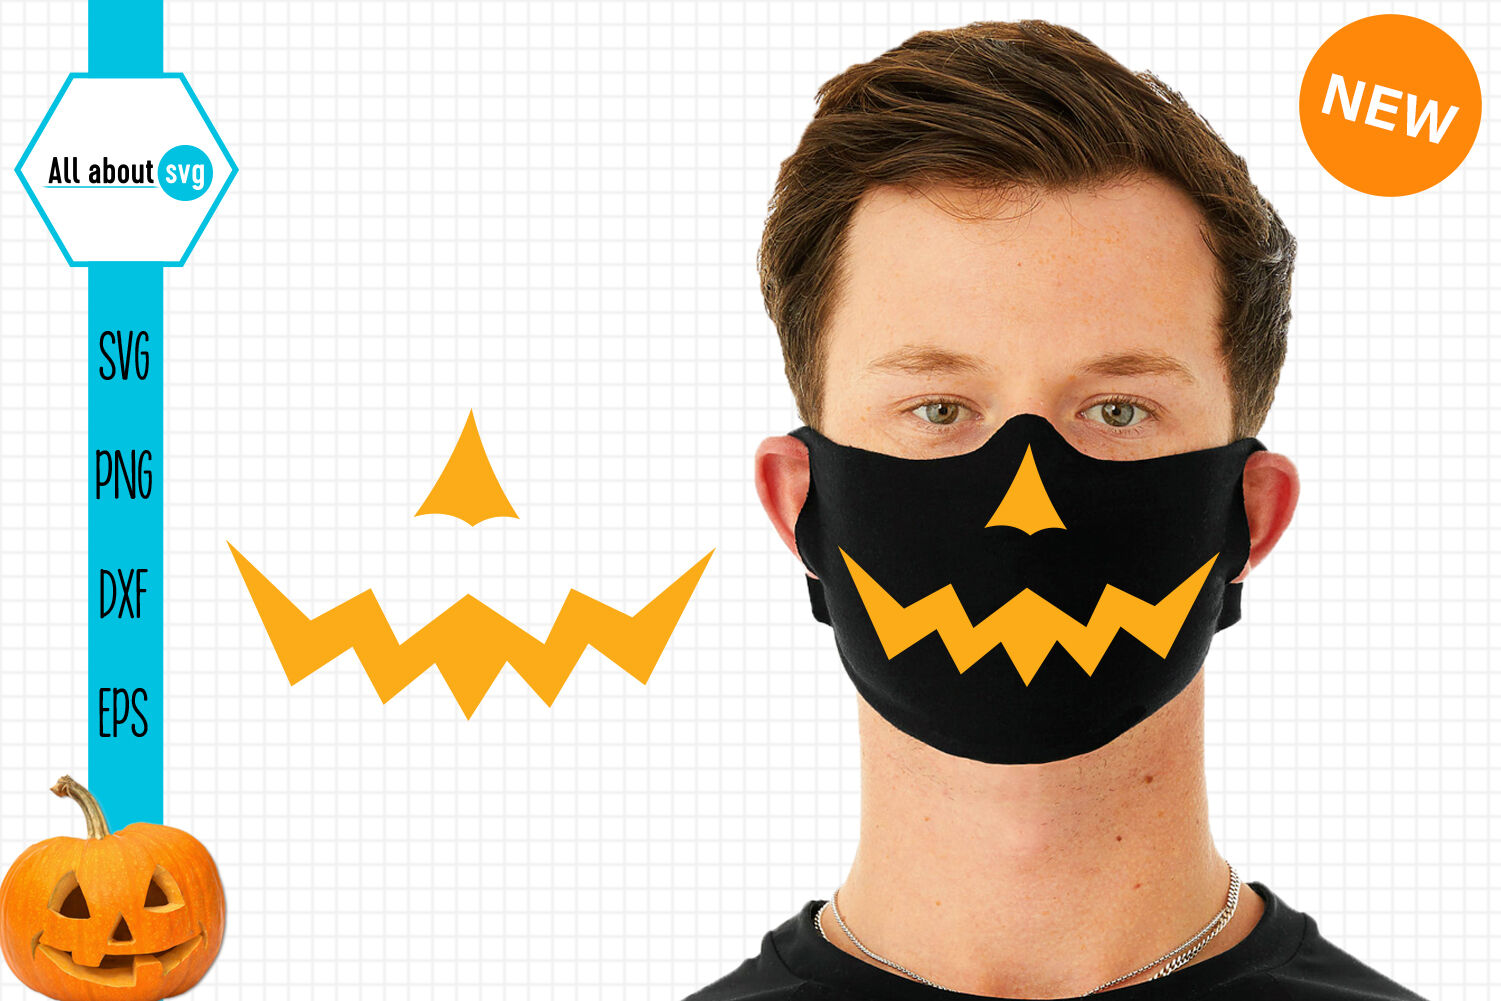 Pumpkin Mouth Bundle Halloween Face Mask Bundle By All About Svg Thehungryjpeg Com